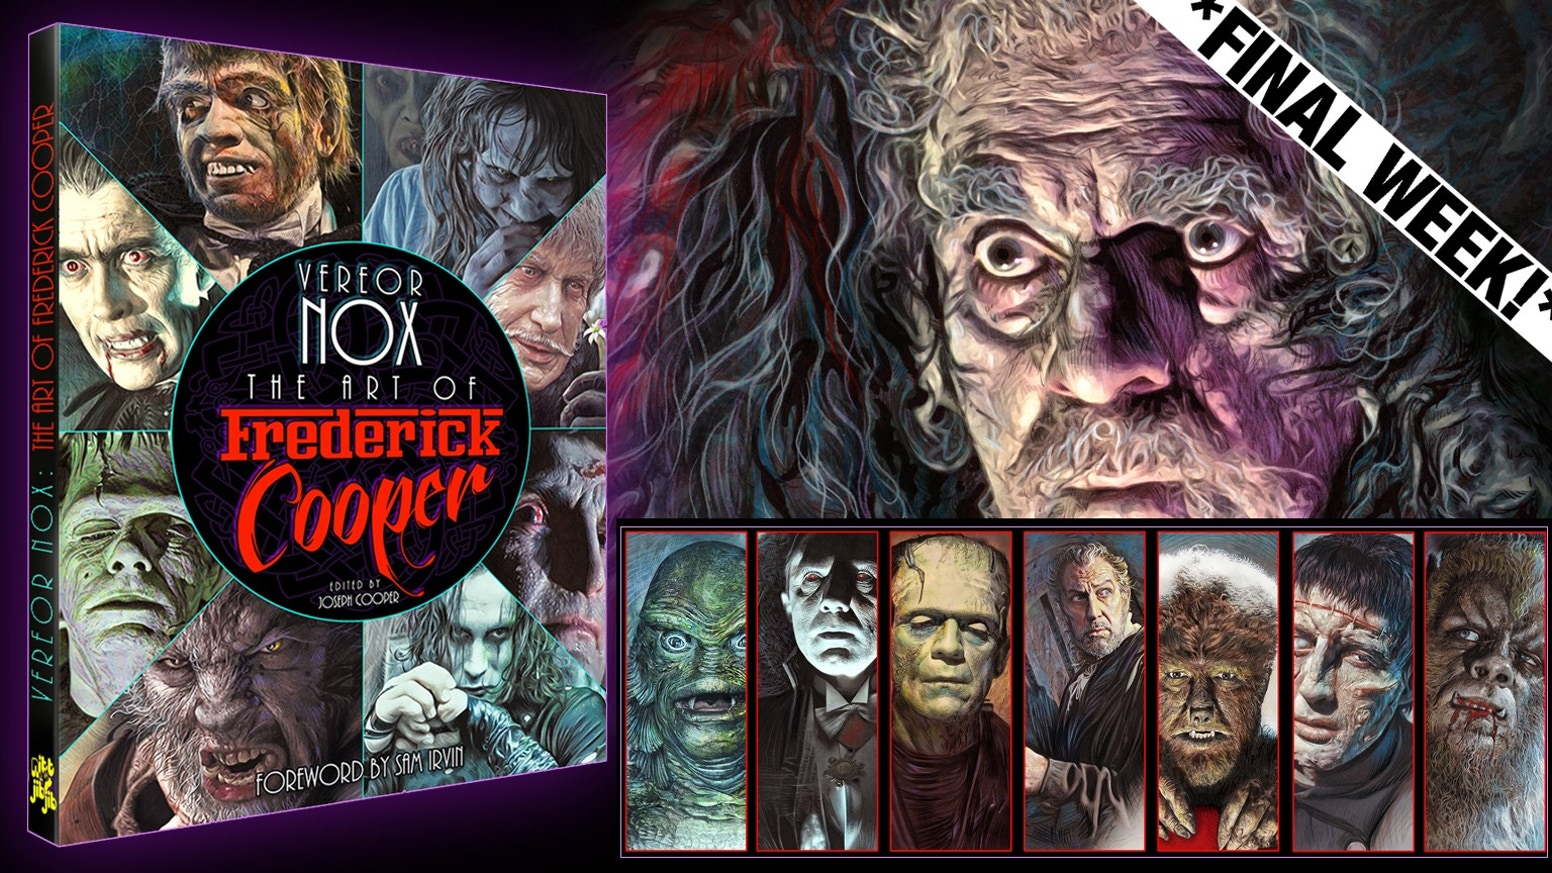 A classic horror art book by Frederick Cooper featuring commentary on his influences and a breakdown of his technique .